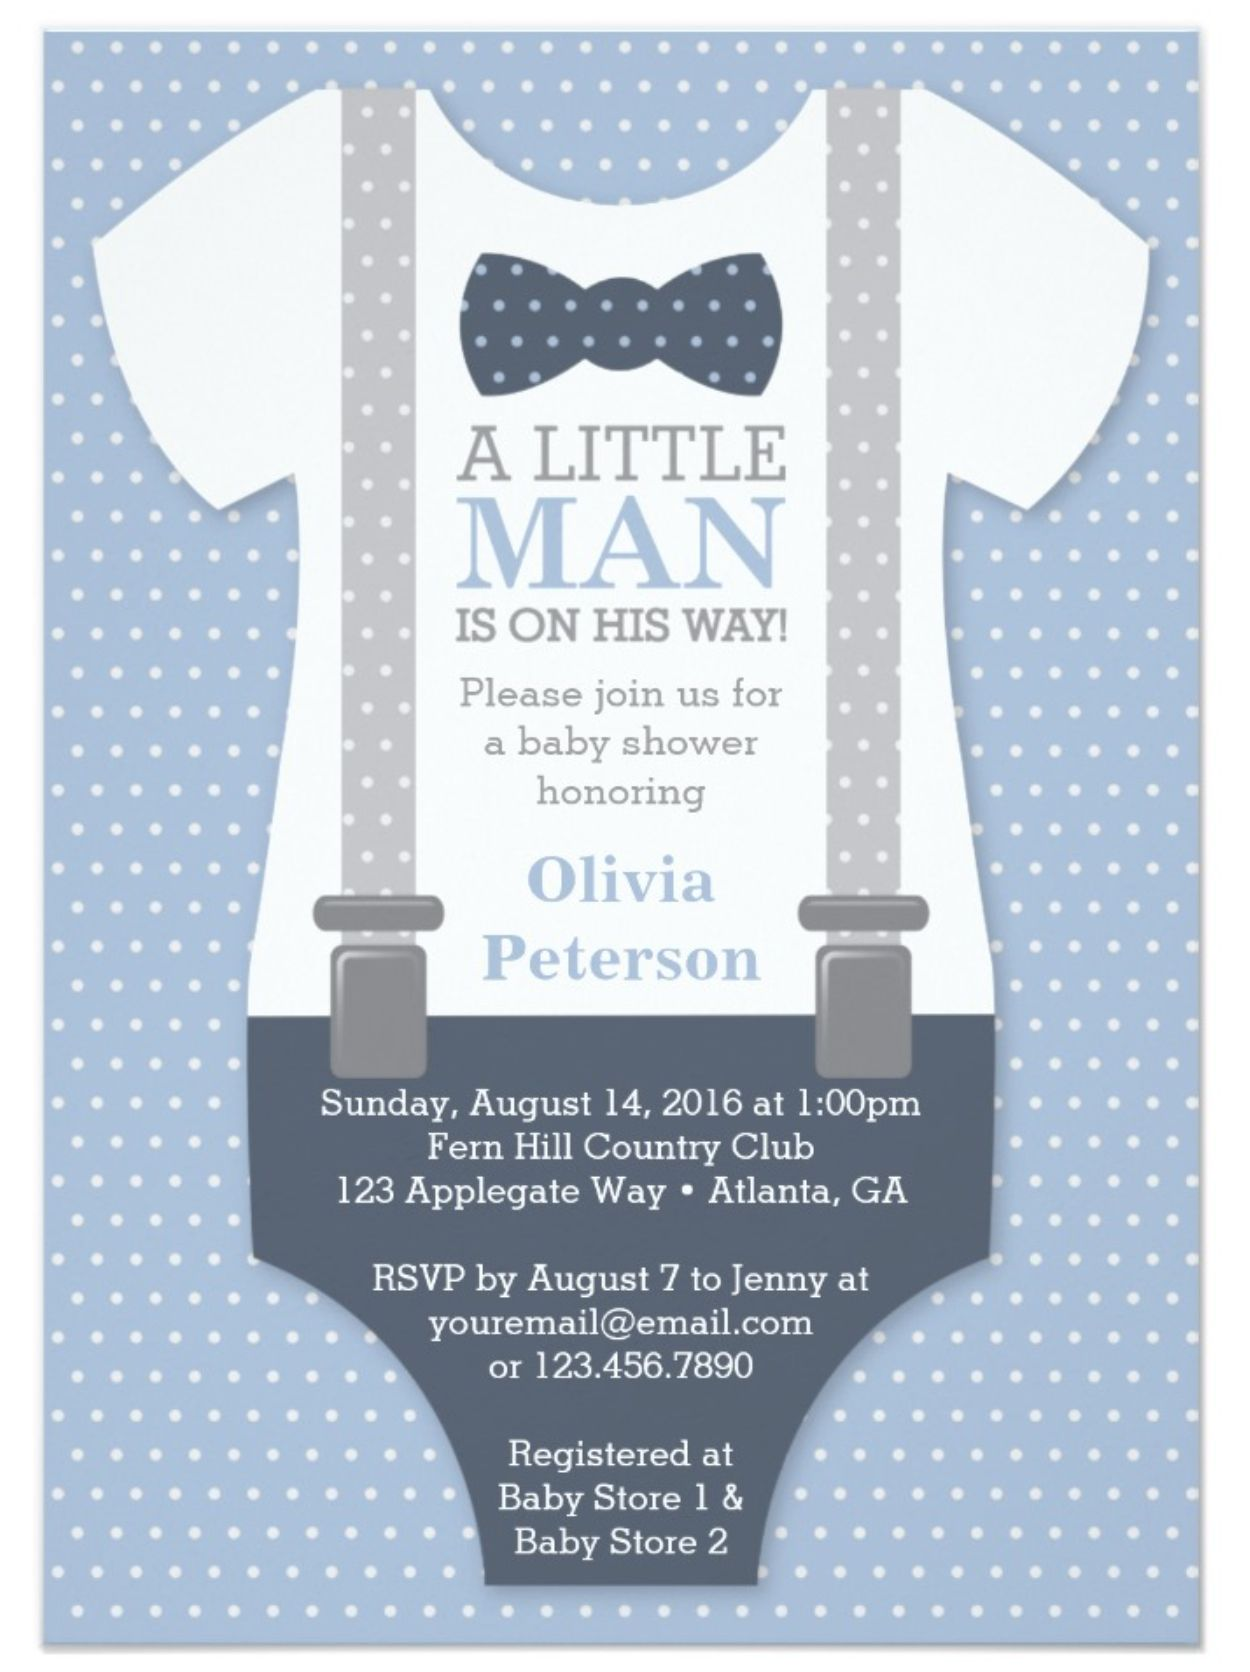 Little Man Baby Shower Invitation in Blue and Gray